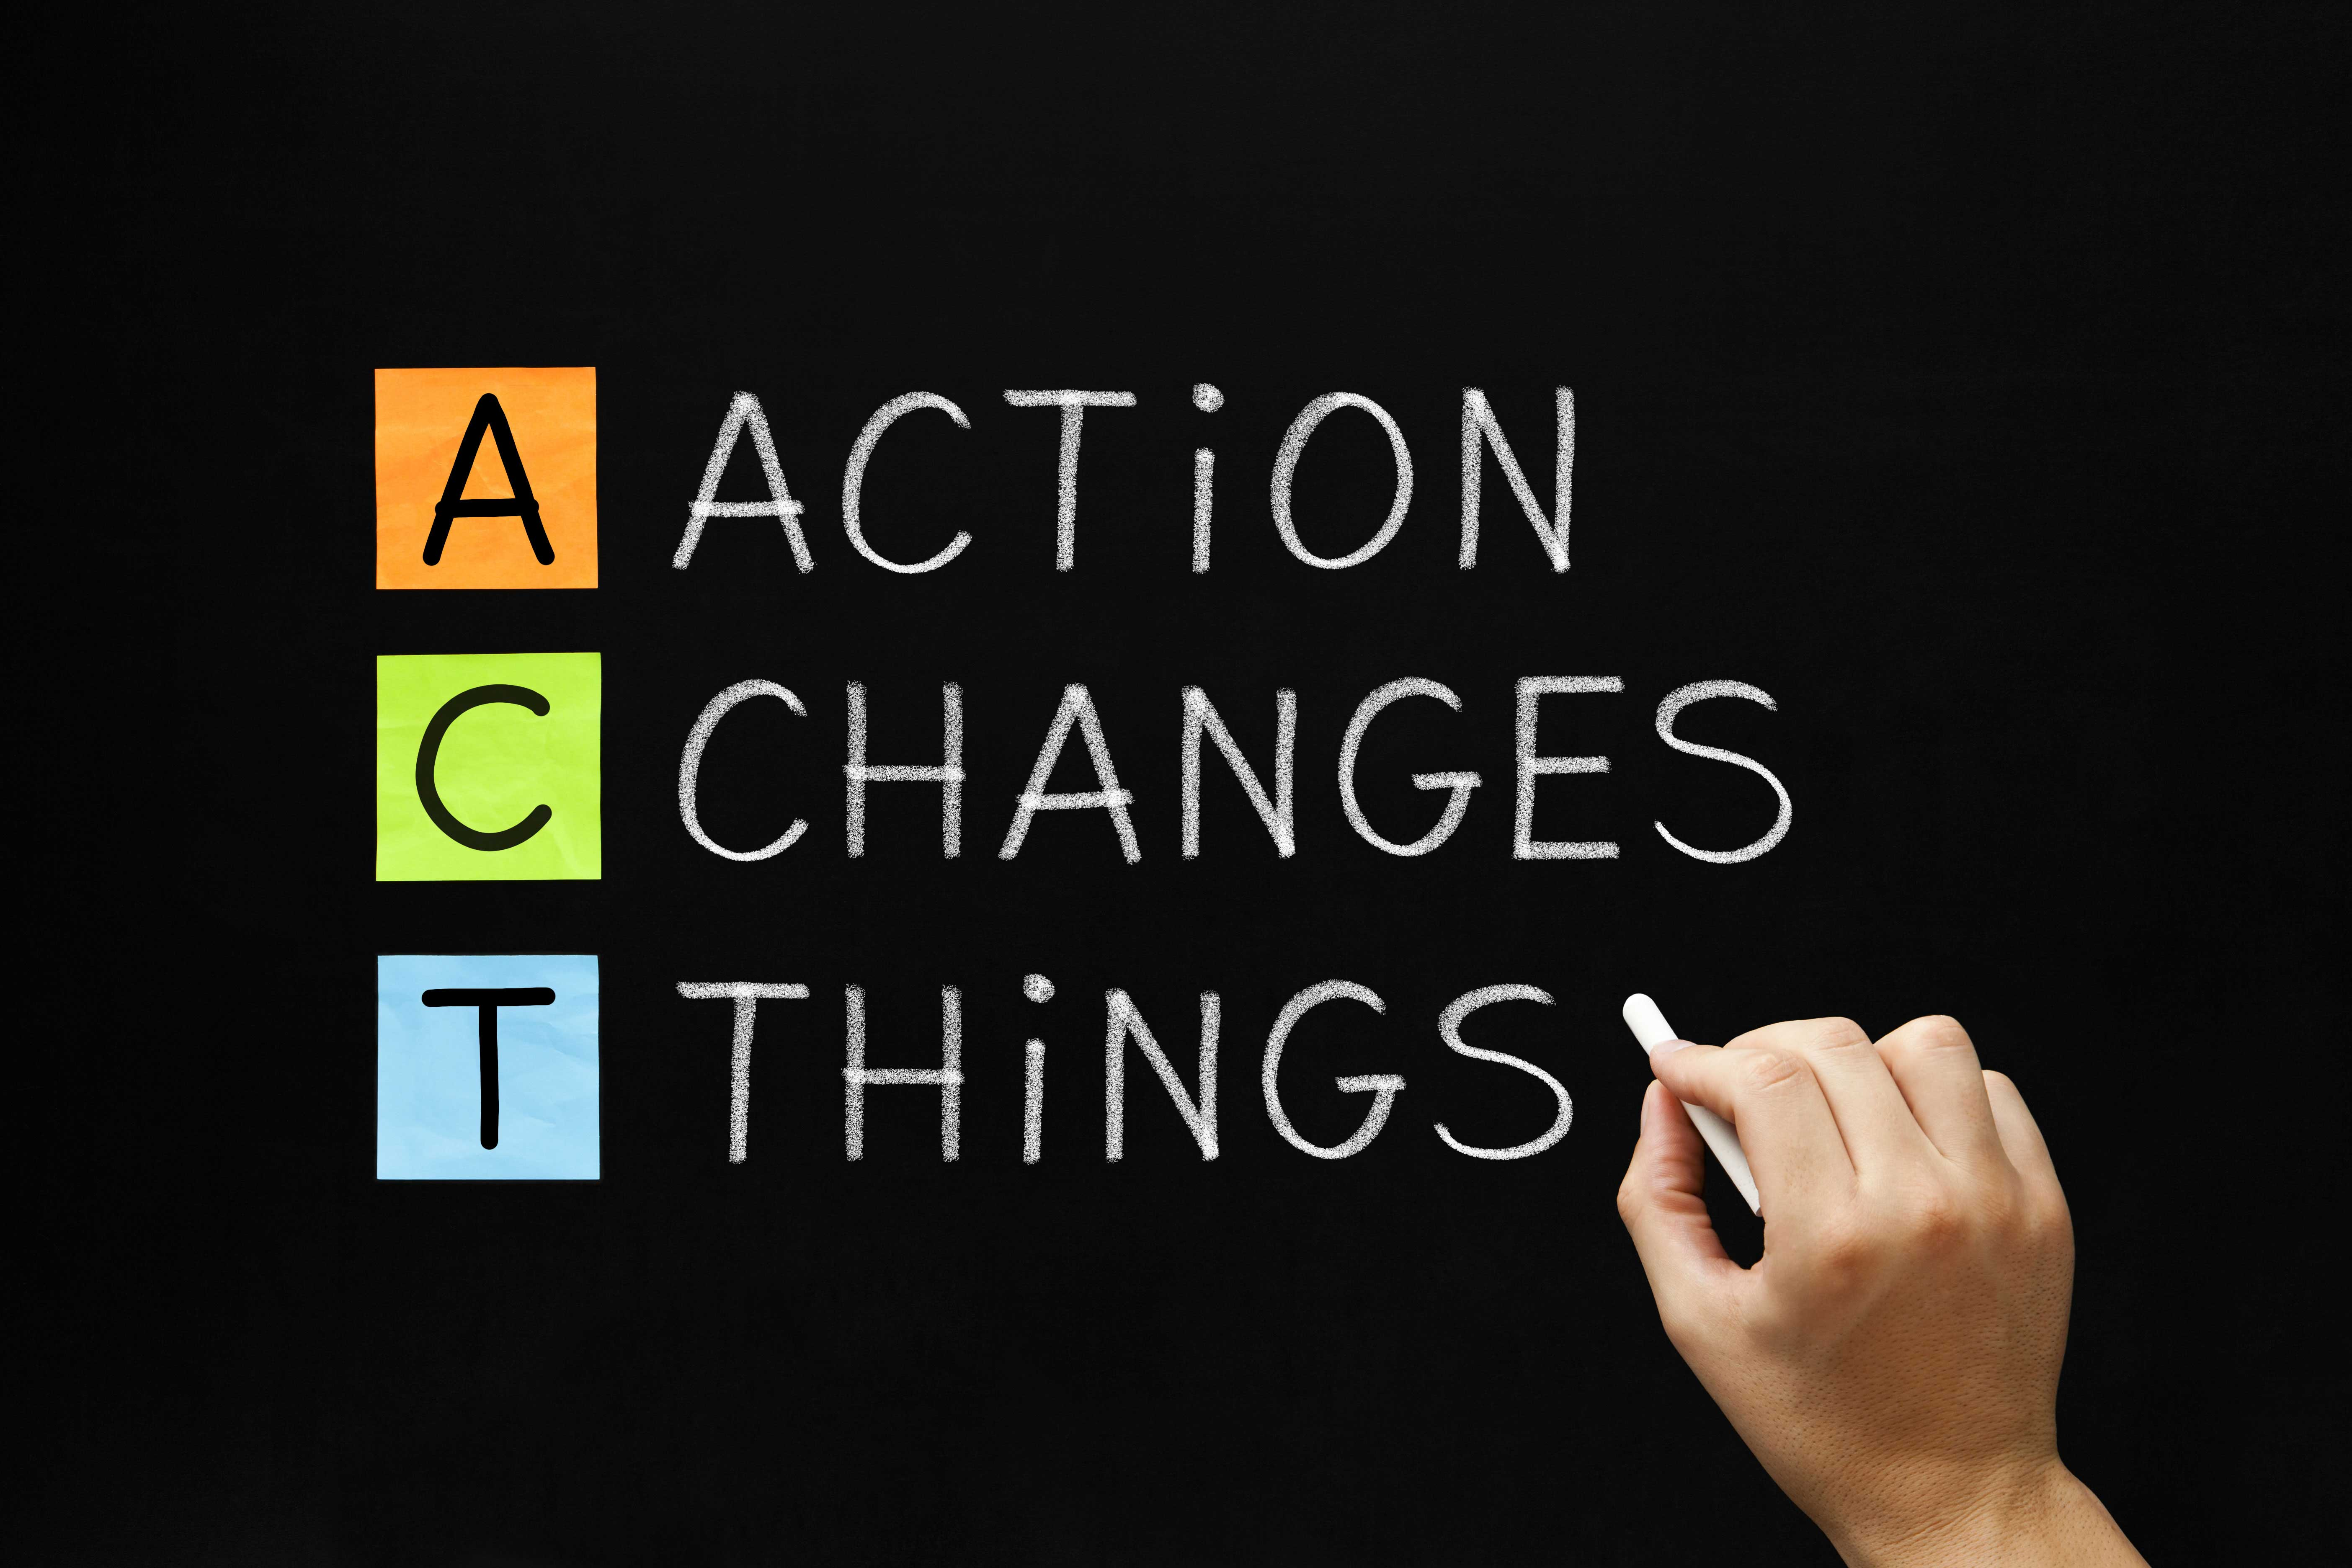 advocacy_petitions_Humanity-Healing_bigstock-Action-Changes-Things-Acronym-42985816